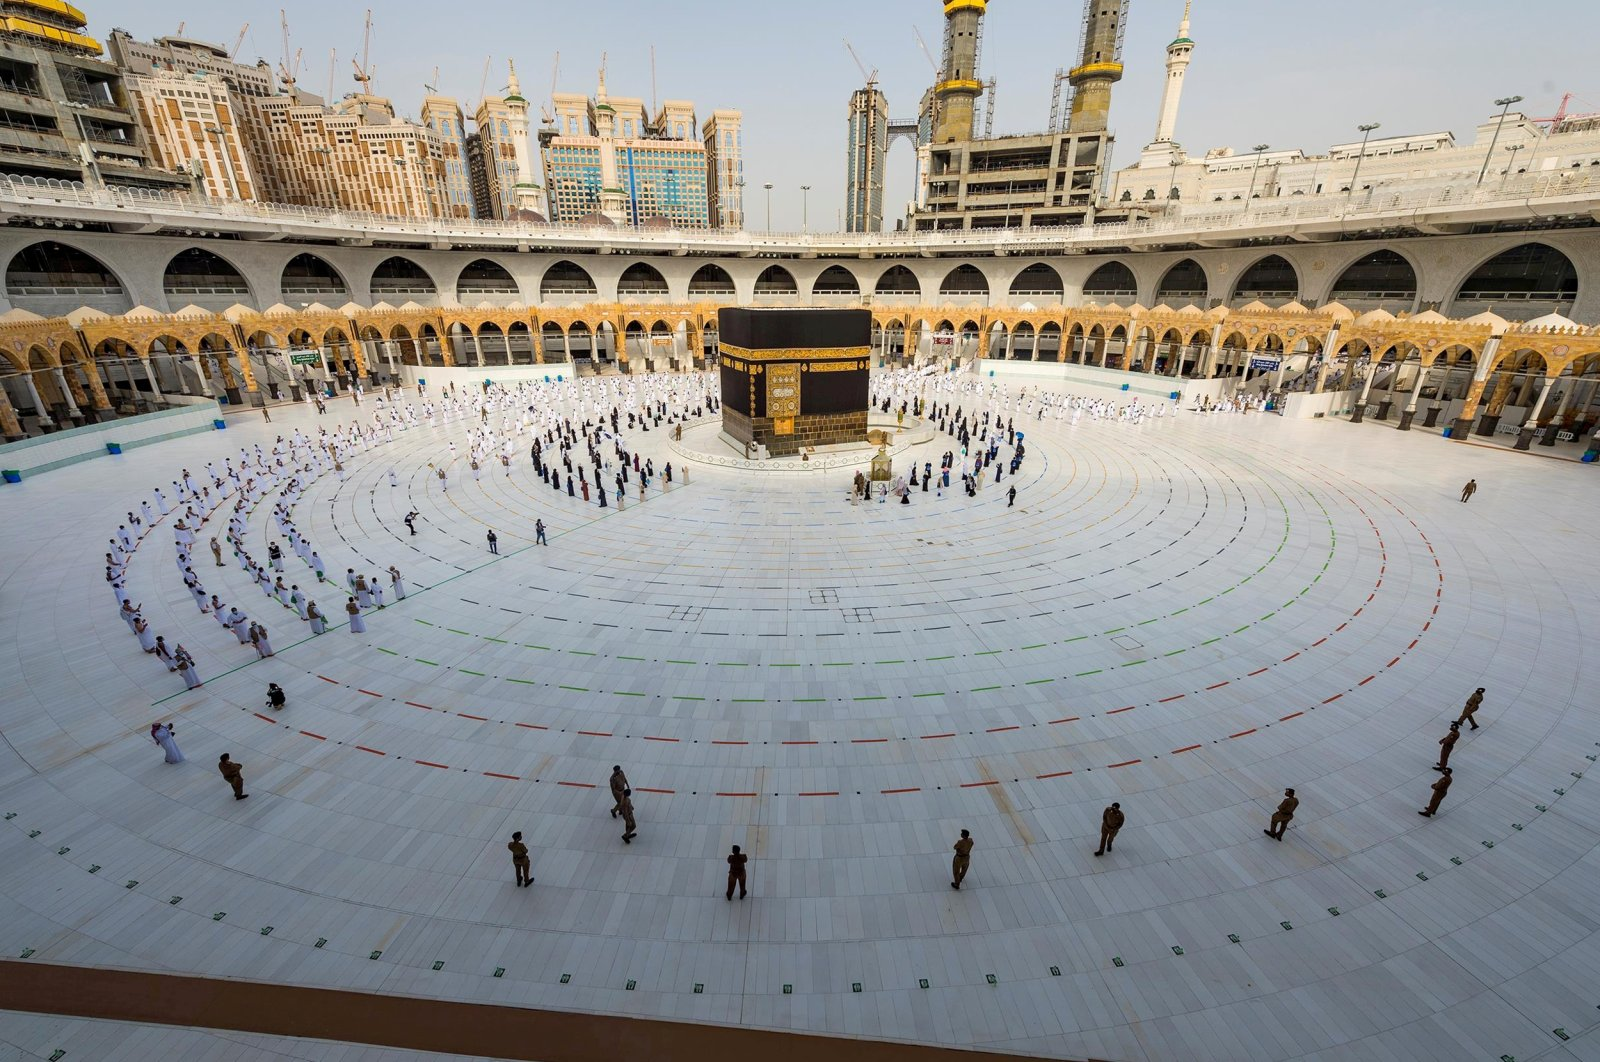 Muslim pilgrims wearing face masks and keeping social distance pray facing Kaaba during the annual Hajj pilgrimage amid the COVID-19 pandemic, in the holy city of Mecca, Saudi Arabia, July 31, 2020. (Reuters Photo)